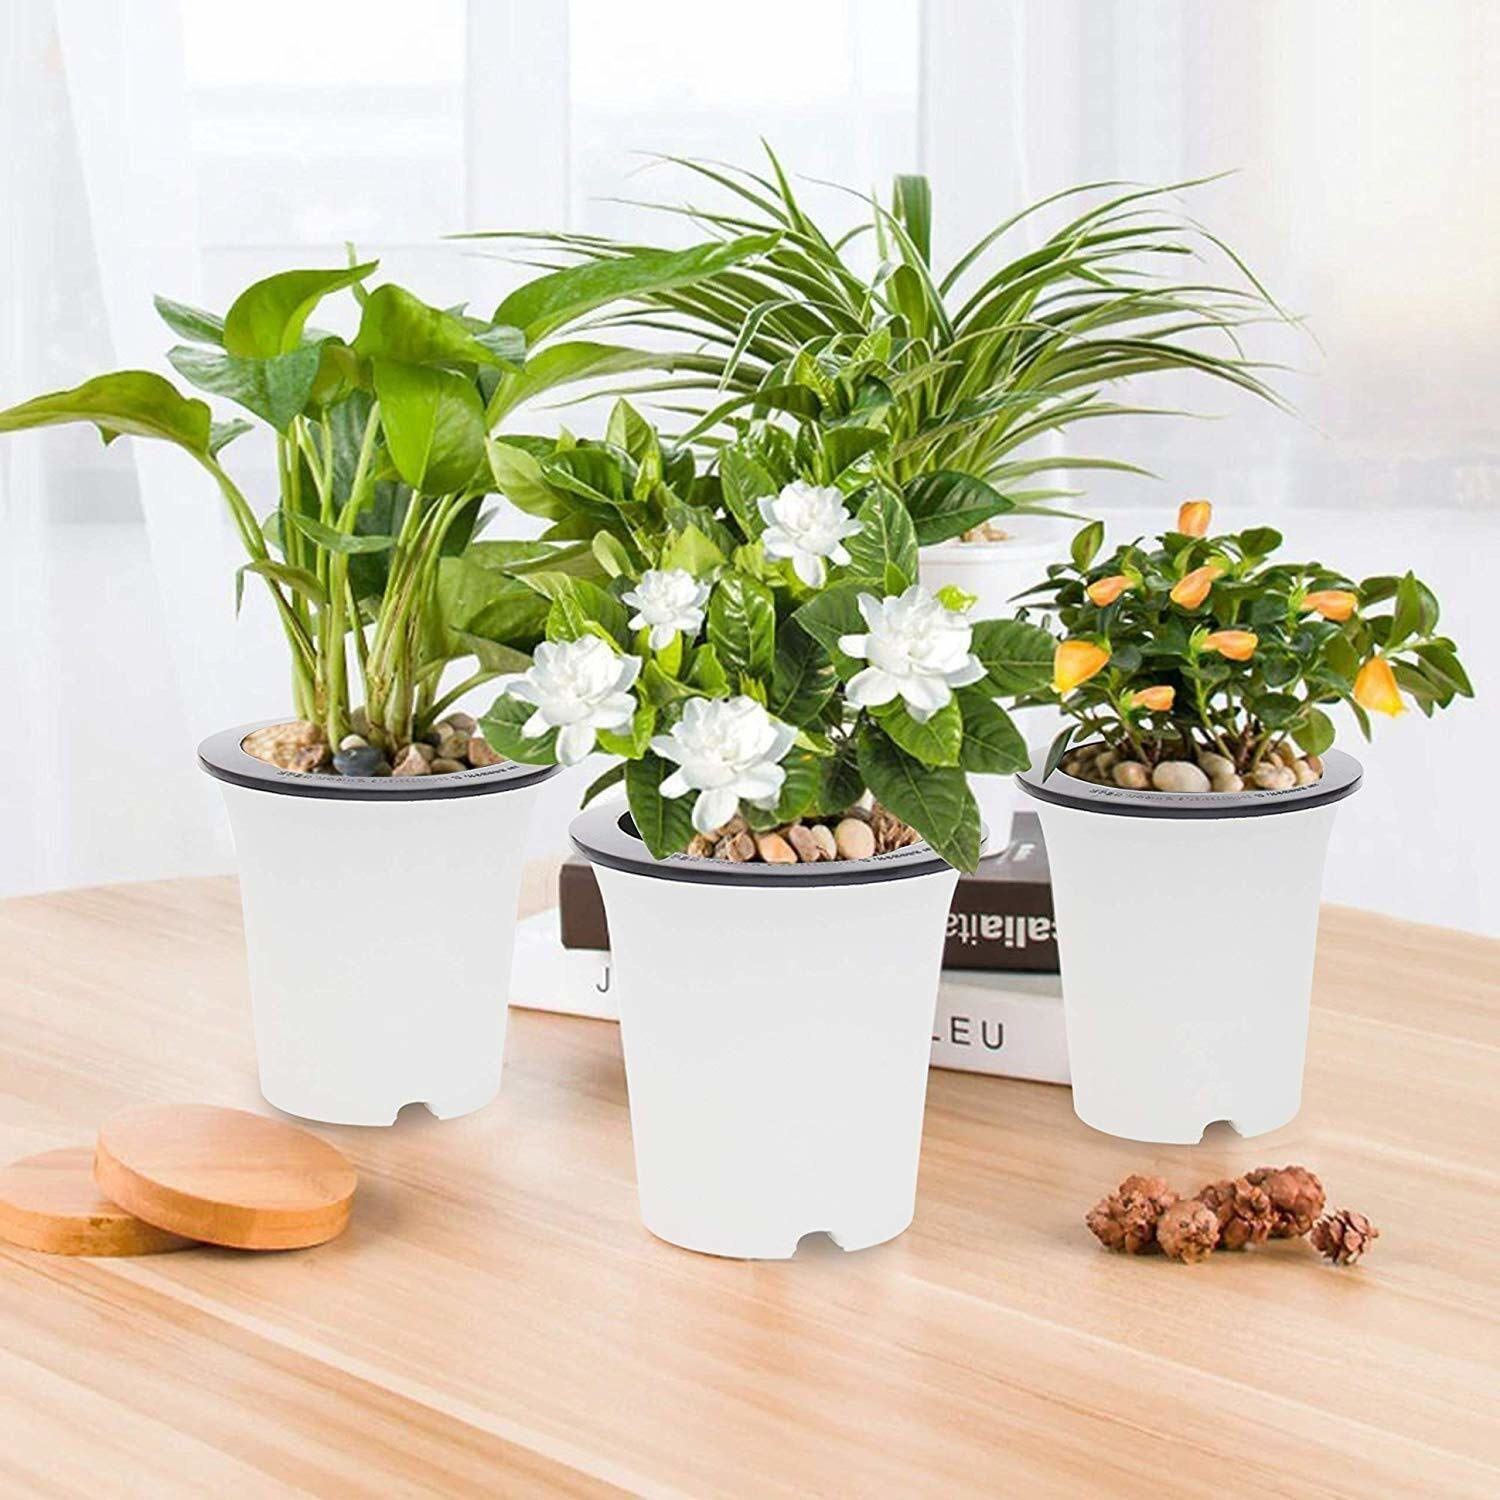 A set of 3 white flowering pot with flowers in them